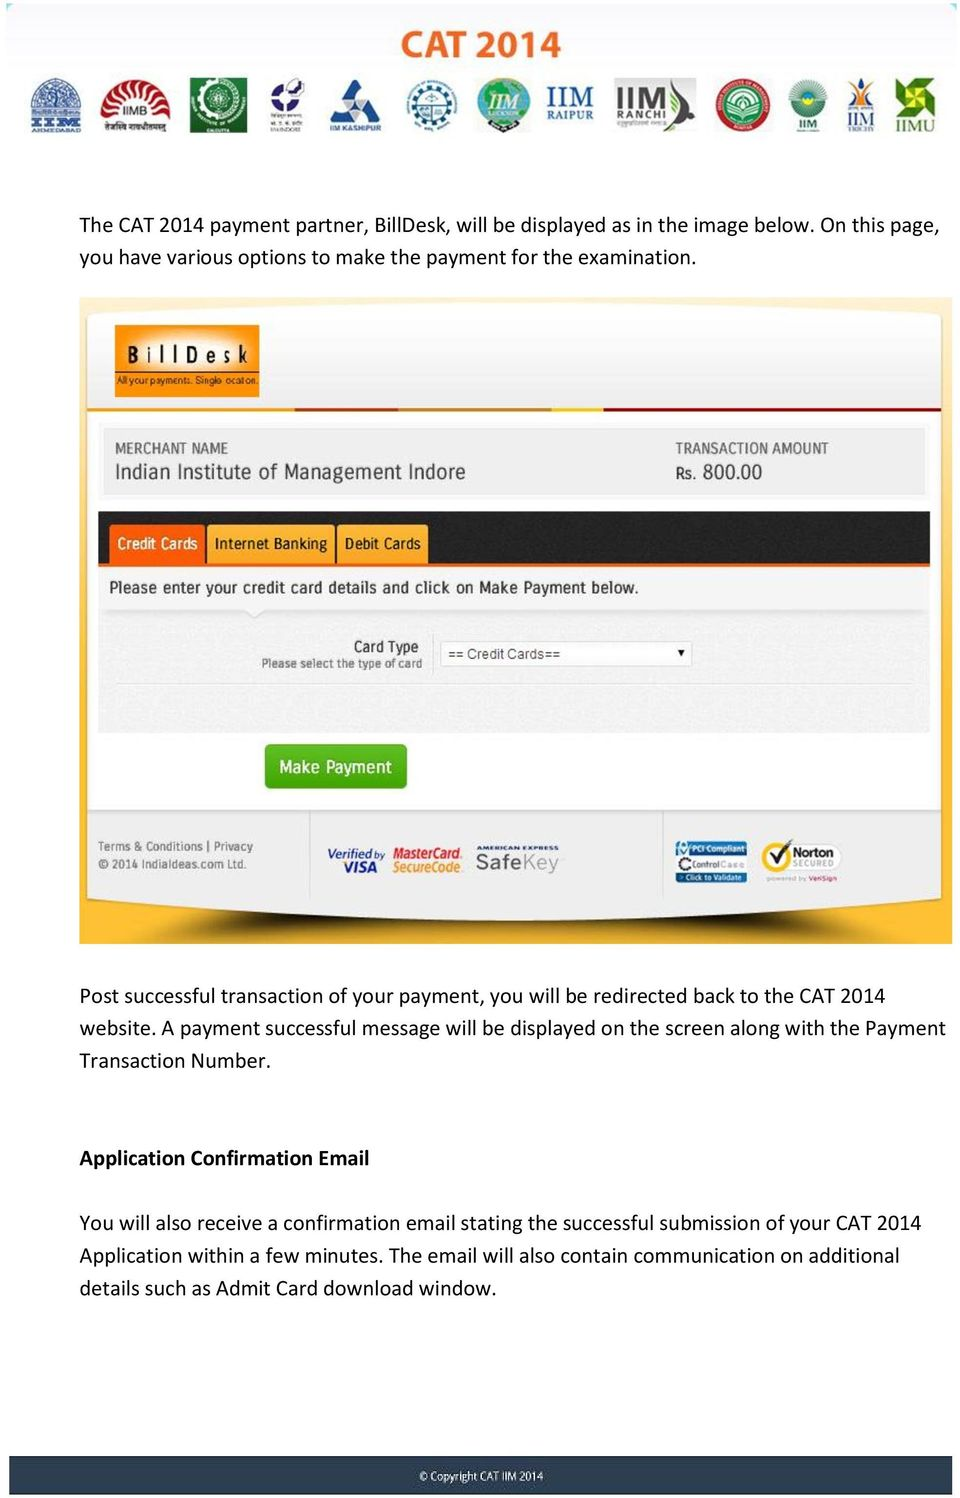 Post successful transaction of your payment, you will be redirected back to the CAT 2014 website.